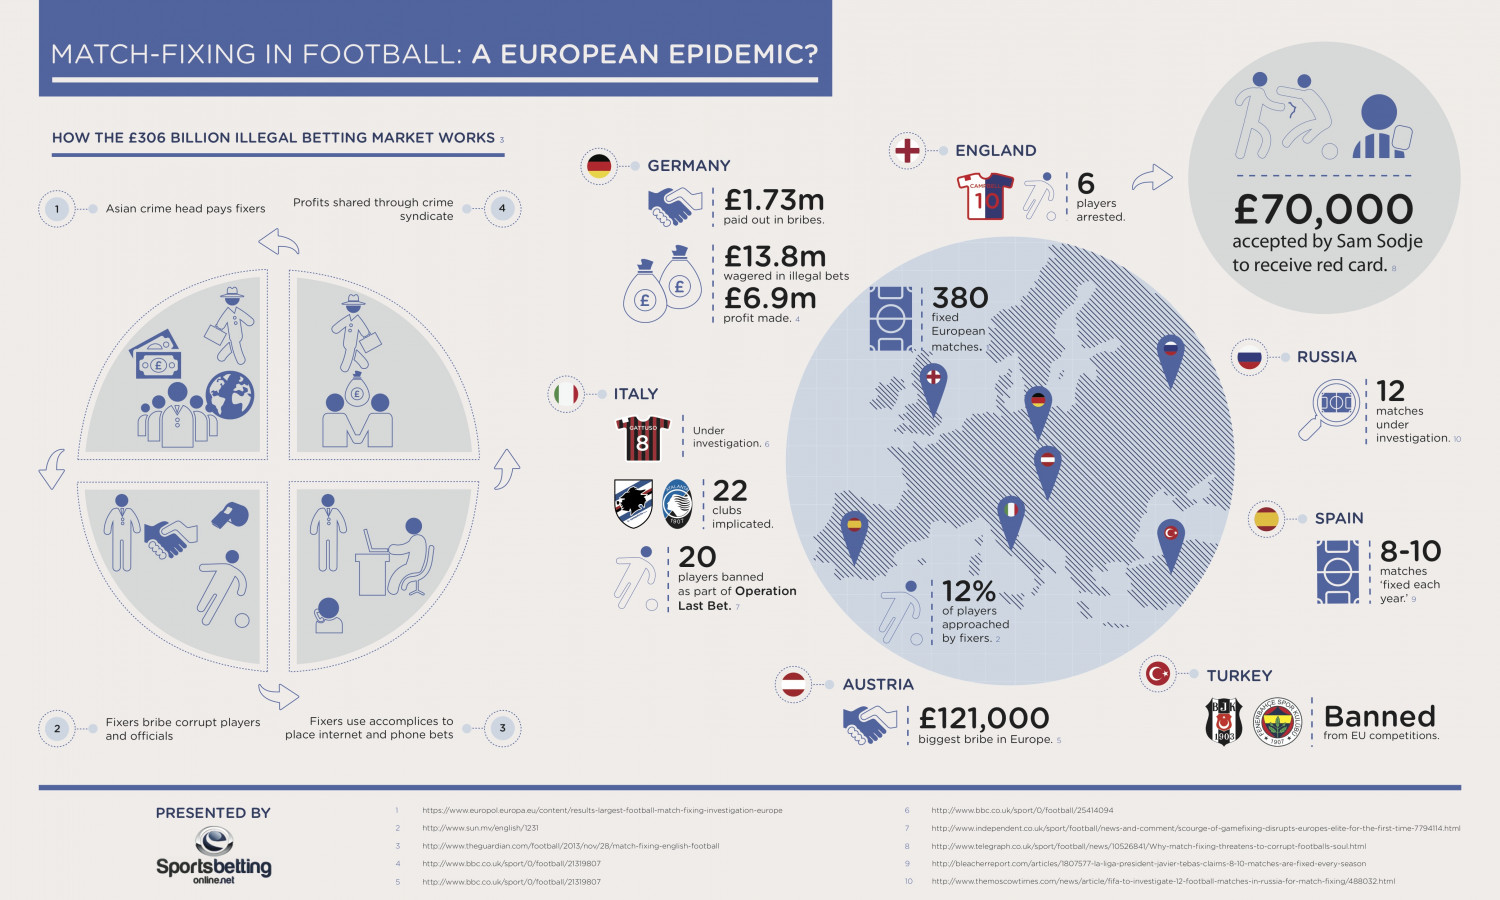 Match Fixing In Football: An Epidemic? Infographic